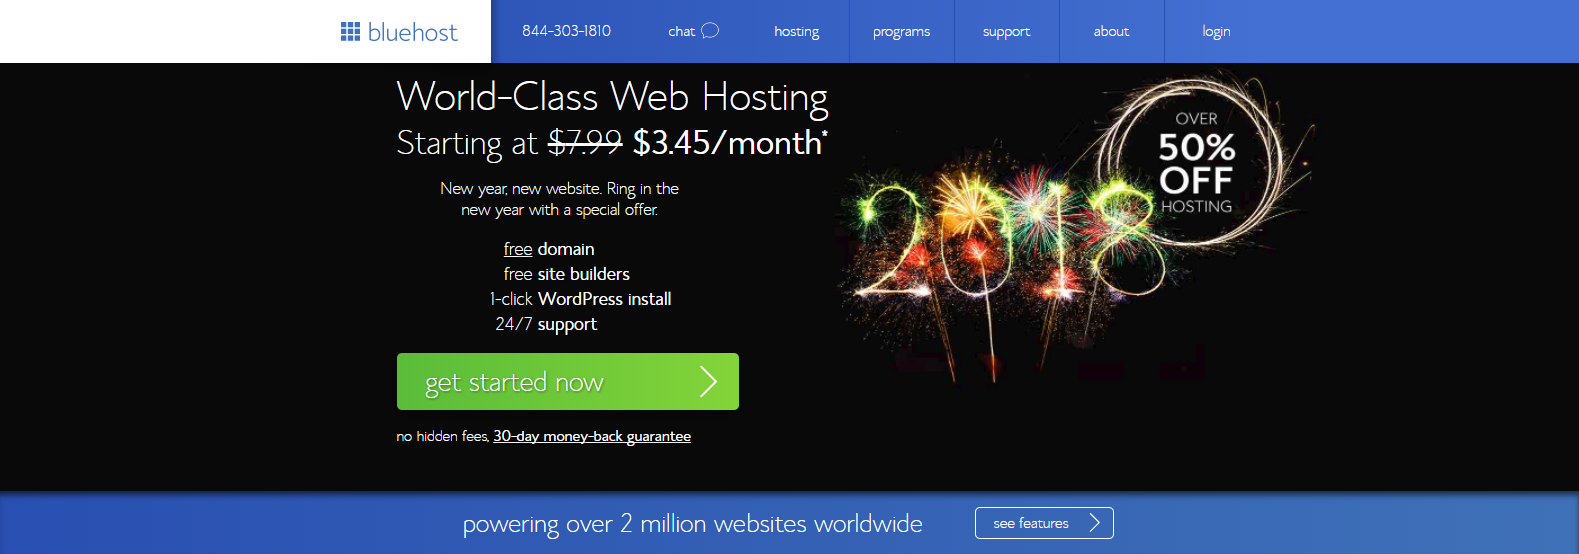 Best WordPress Hosting Providers Comparison & Reviews BlueHost Hosting Review - Best for Bloggers